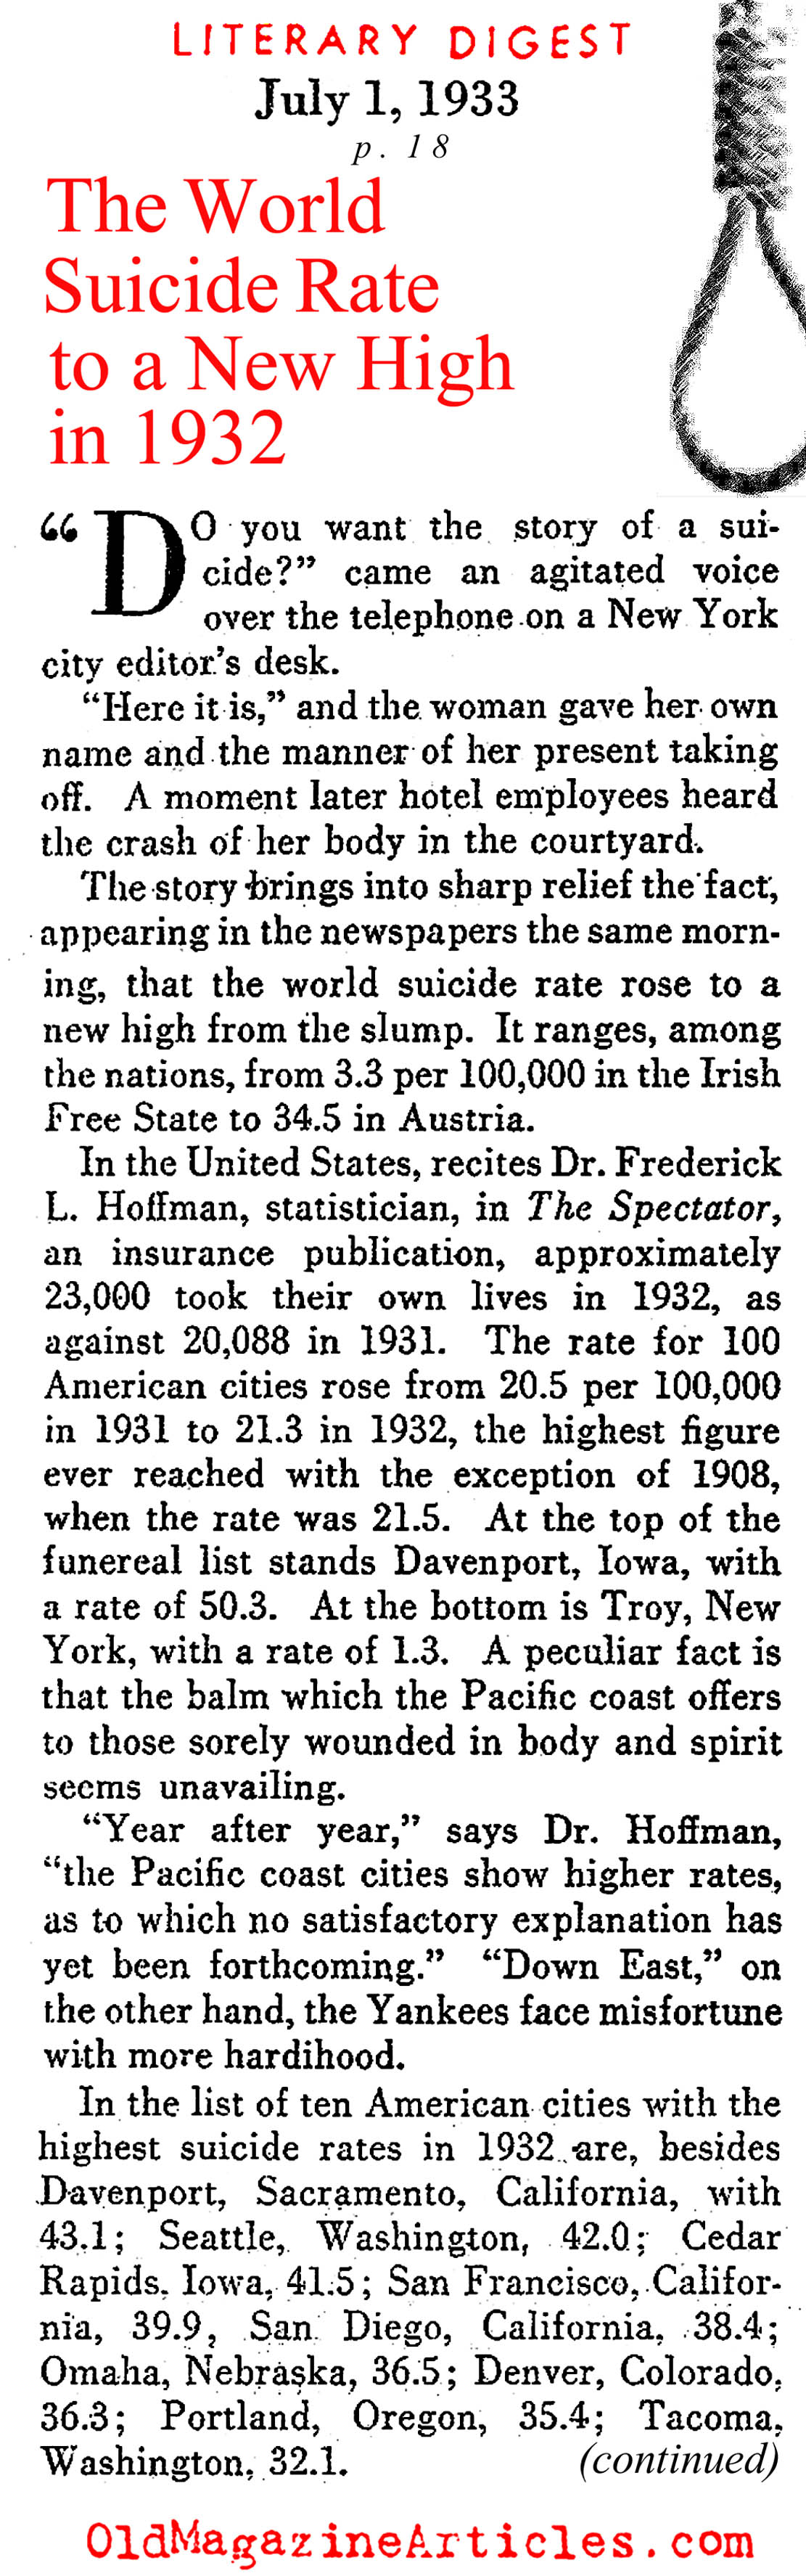 The Increased Suicide Rate (Literary Digest, 1933)